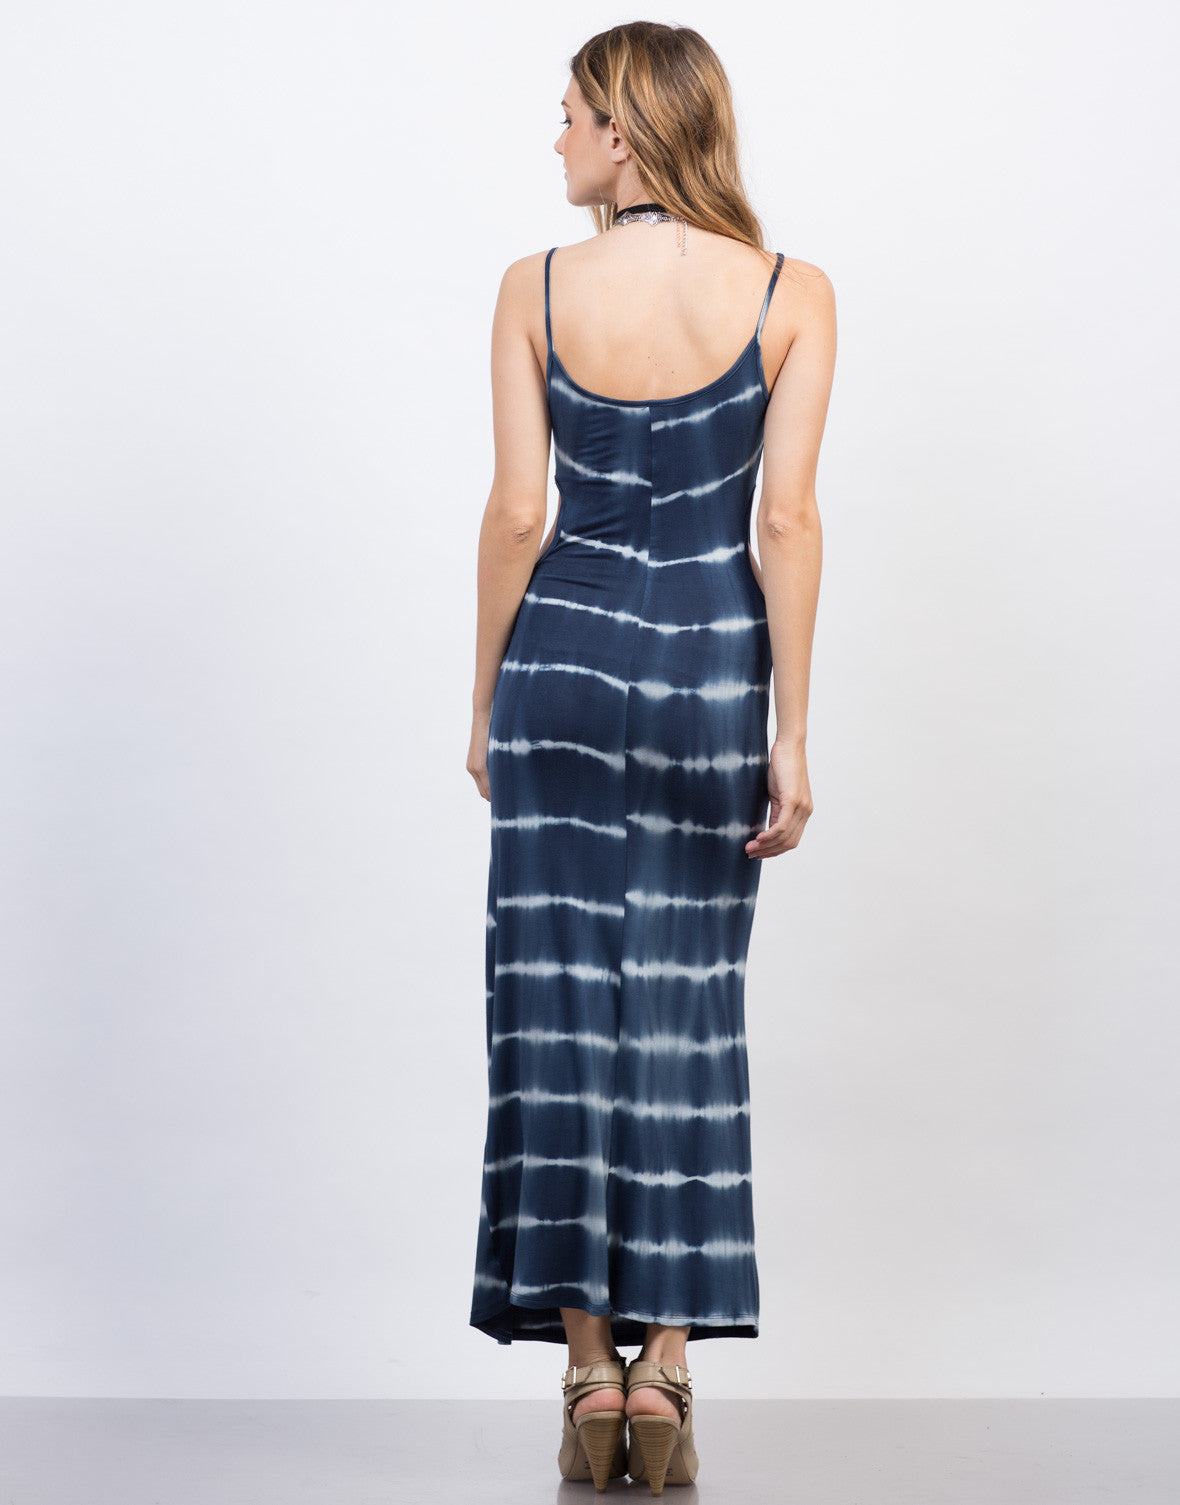 Tie-Dye Cut Out Maxi Dress